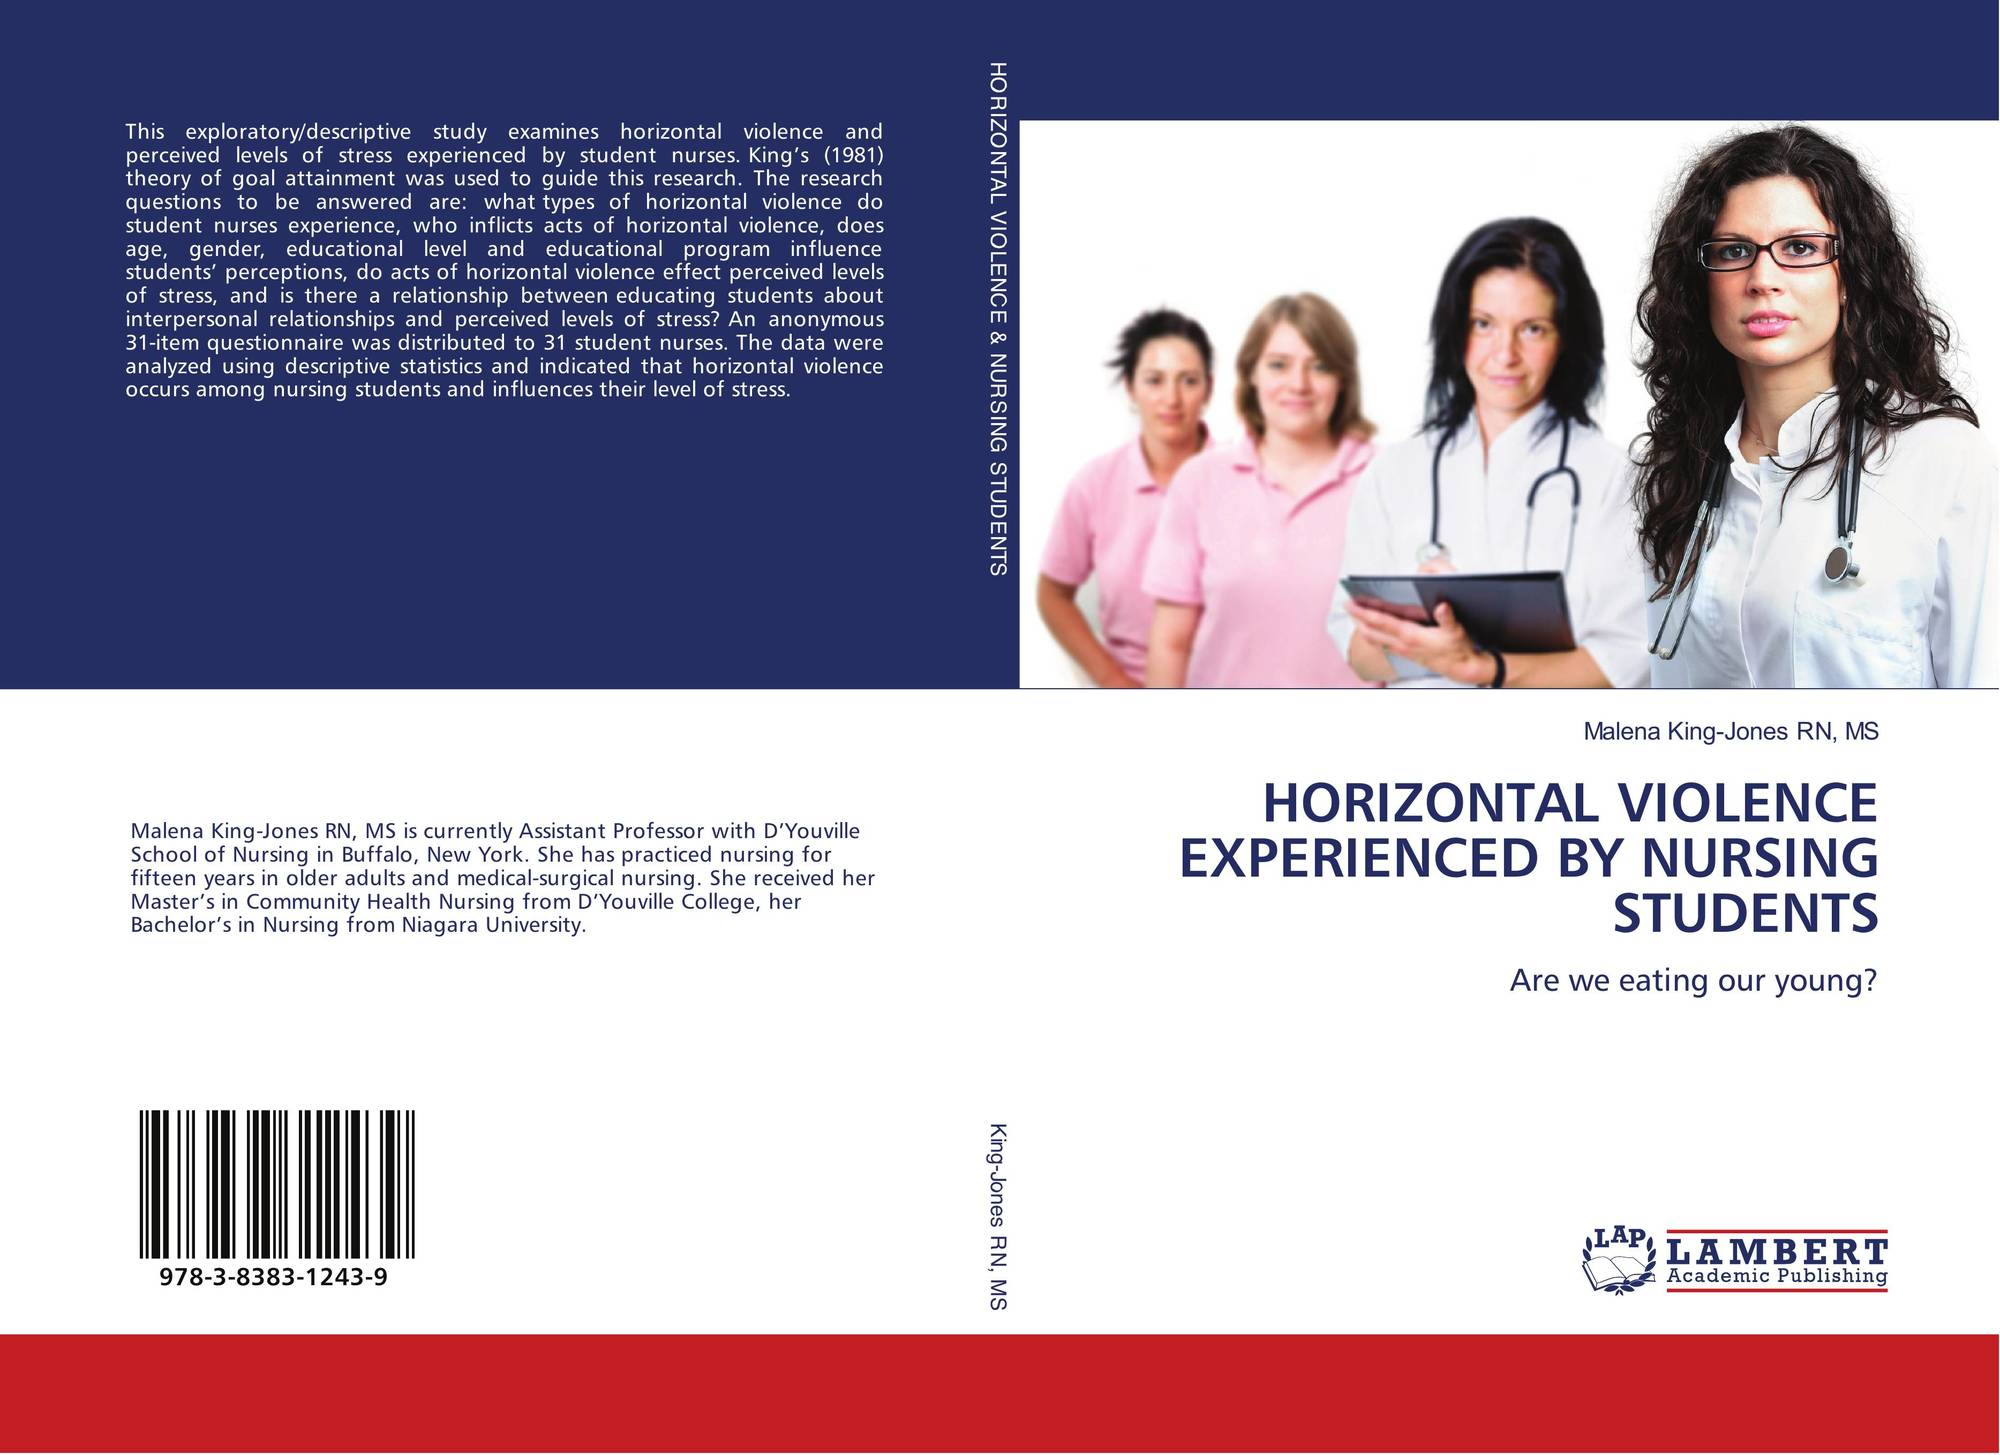 nursing students' perceptions of working with This paper describes a study of perceptions of nursing by nursing students  a study involving nurses, nursing students  school of nursing, social work and.